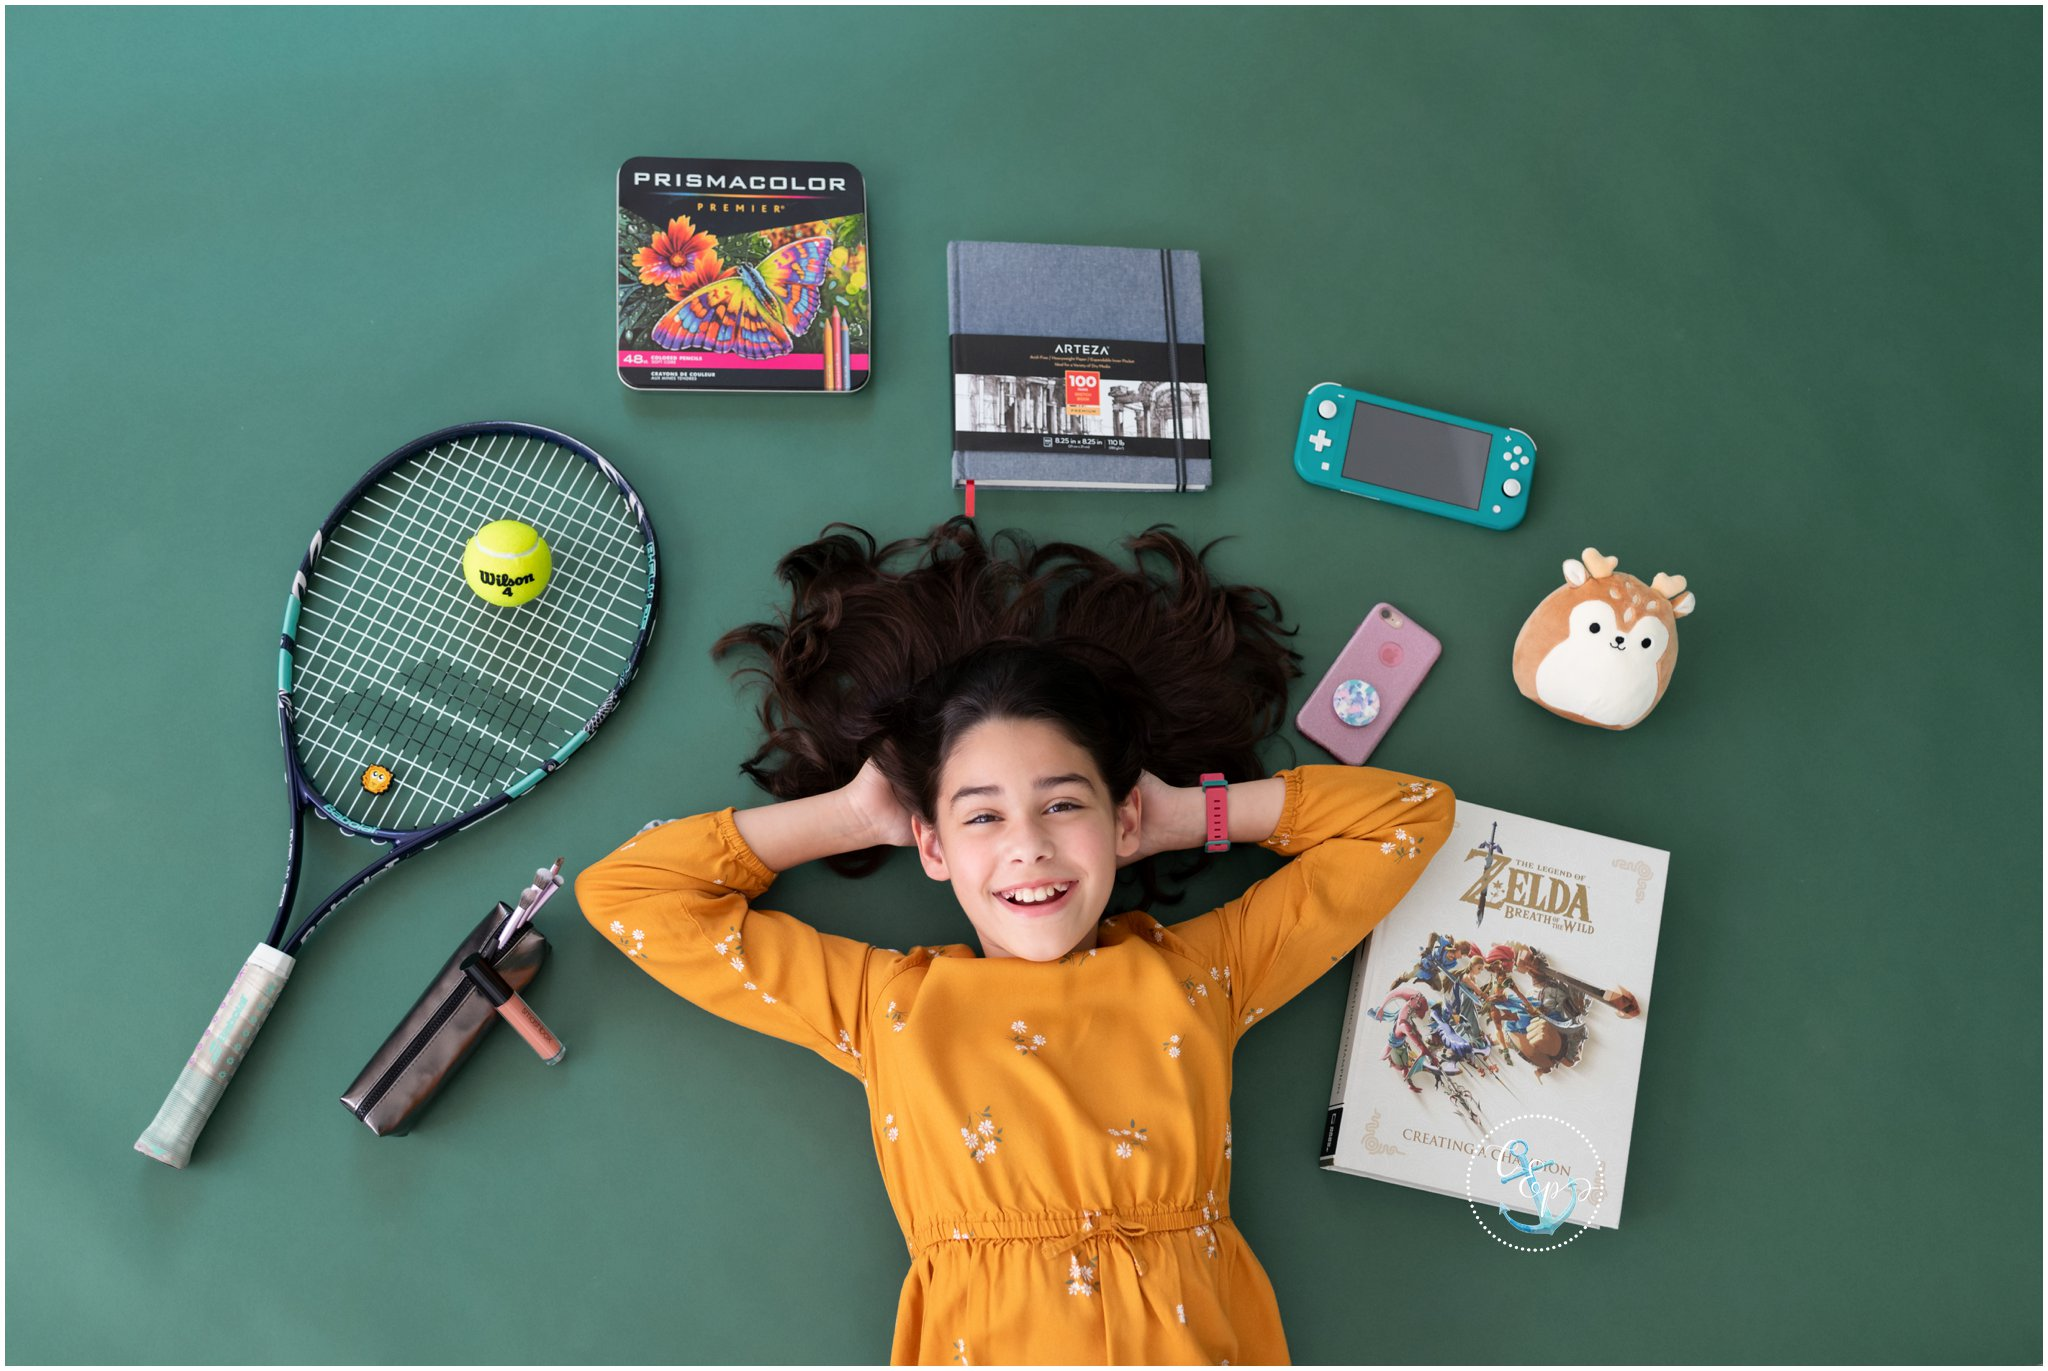 Time capsule portrait for tweens, girl surrounded by books, games, tennis racket, and art supplies, Natural light photos Frederick Maryland, Natural light child portrait photographer, Copyright Cristina Elisa Photography LLC